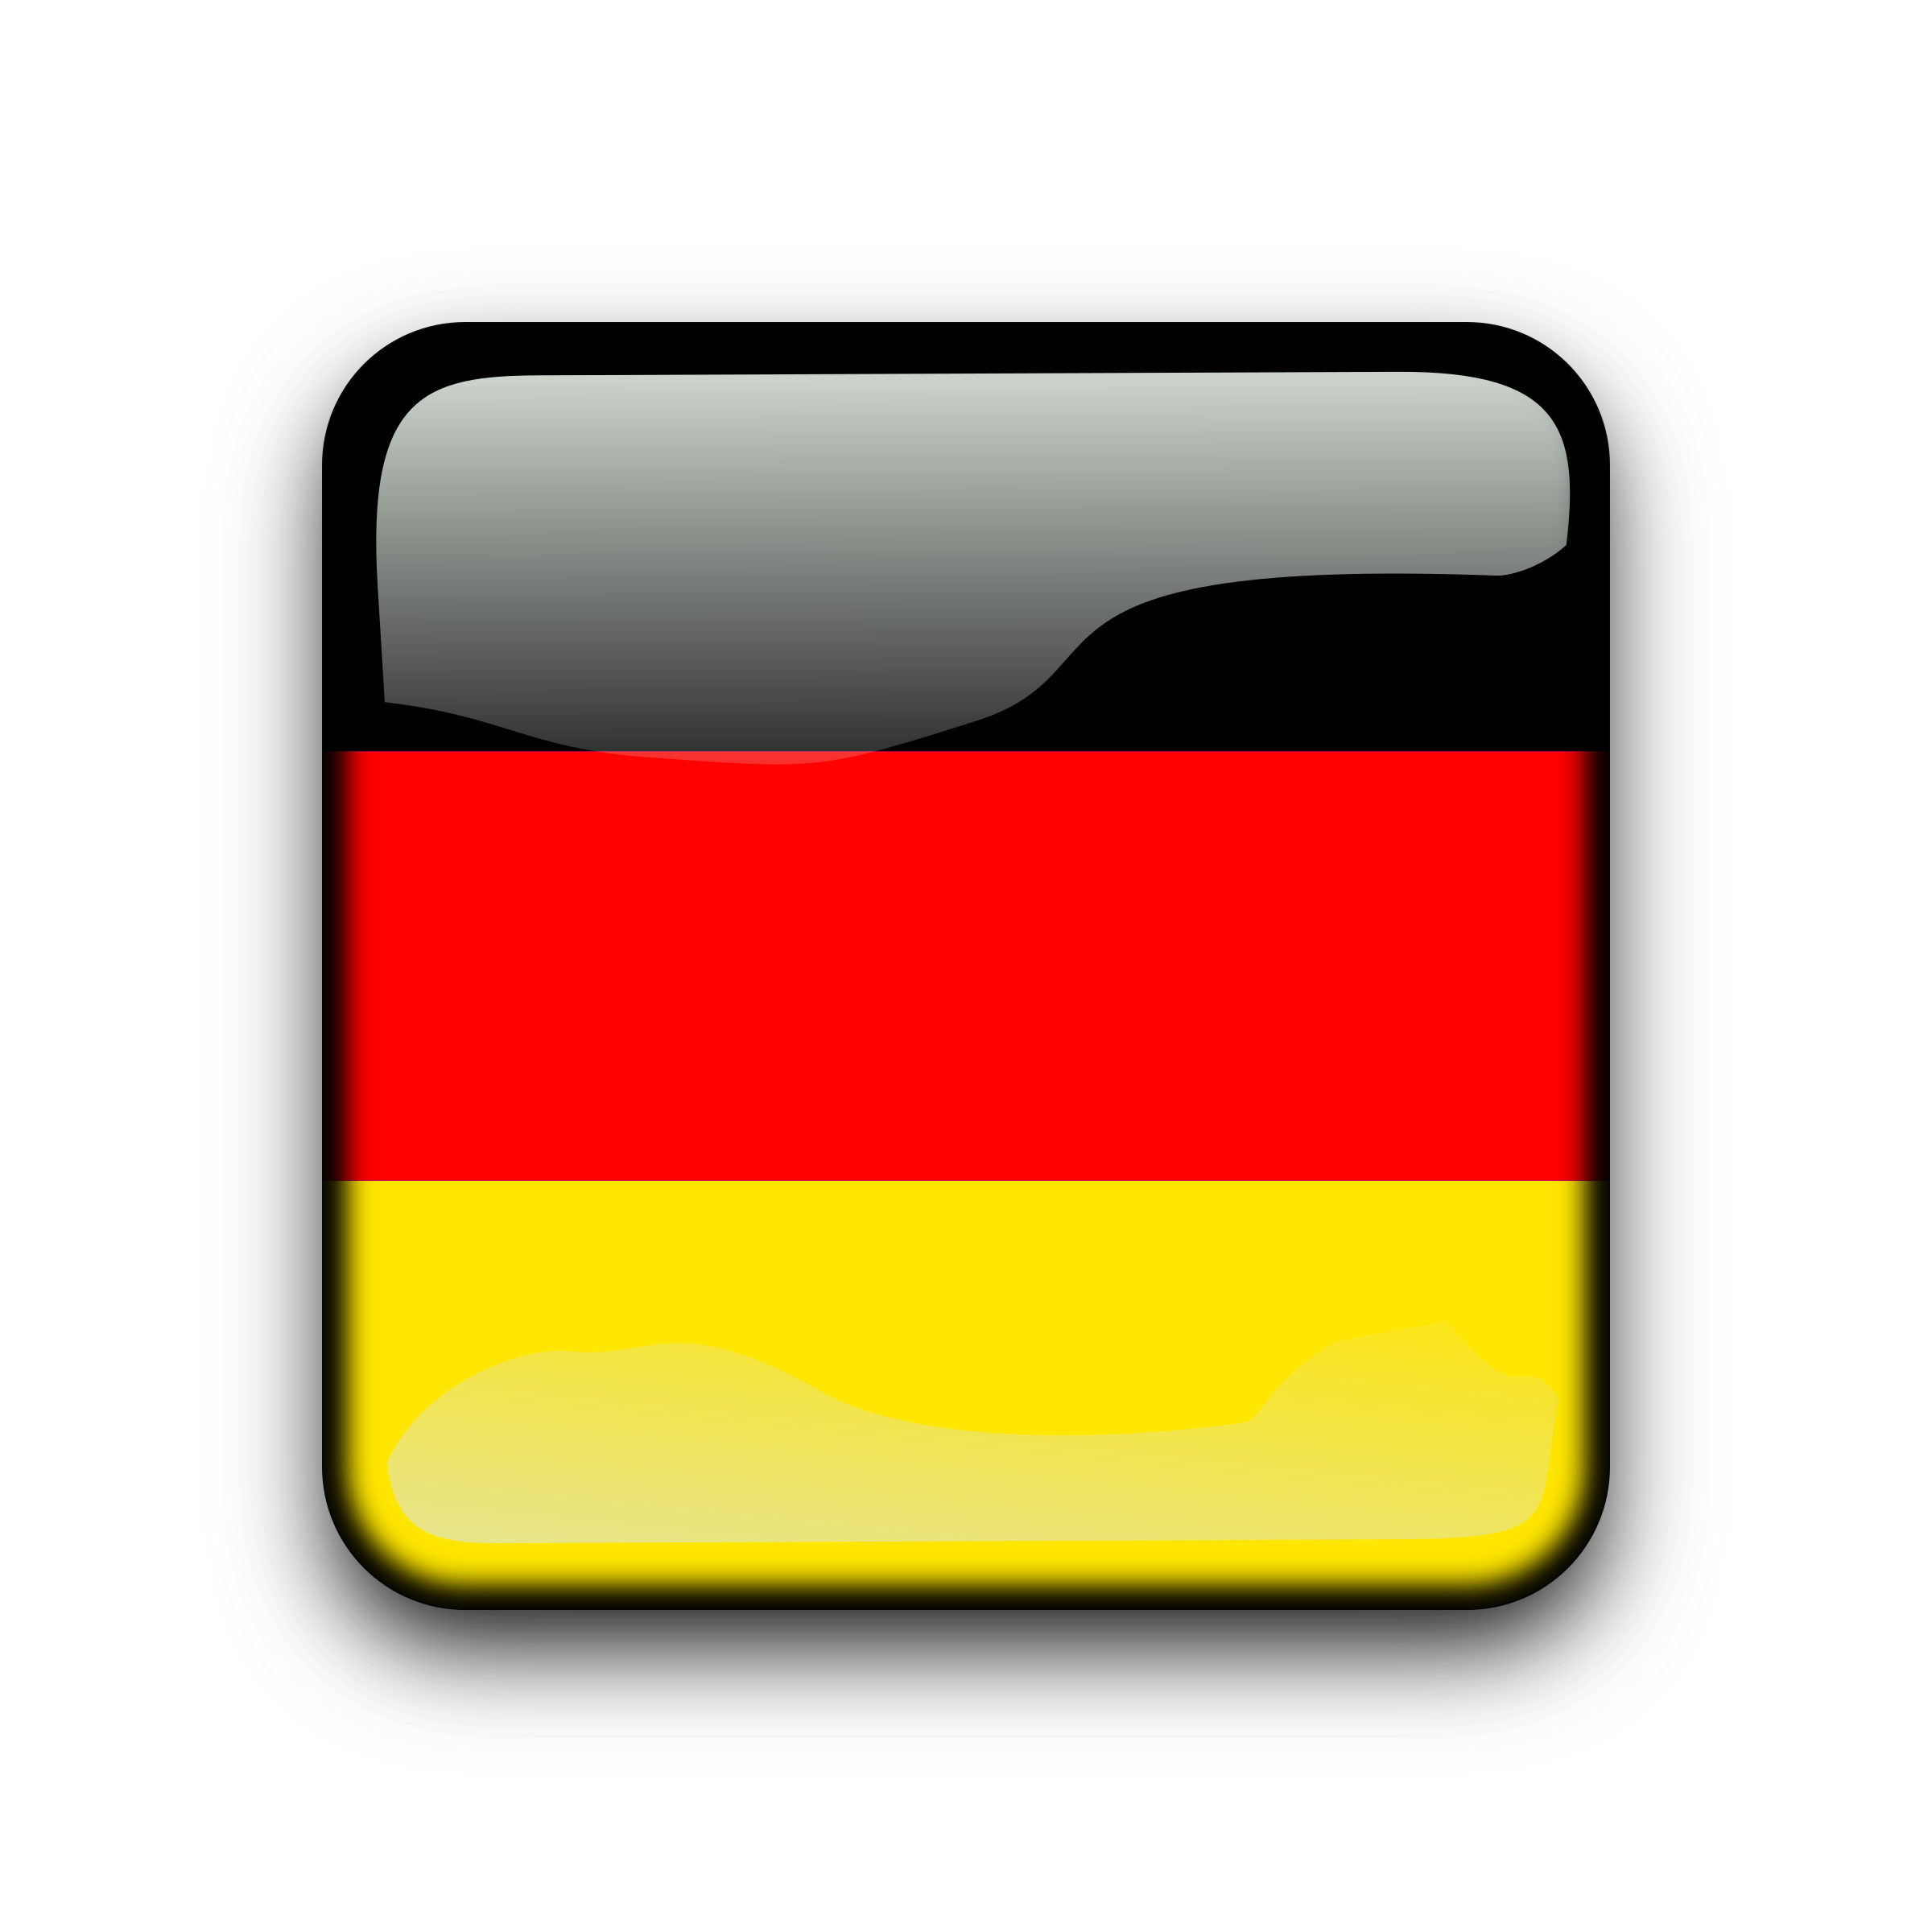 De icons png free. Germany clipart yellow